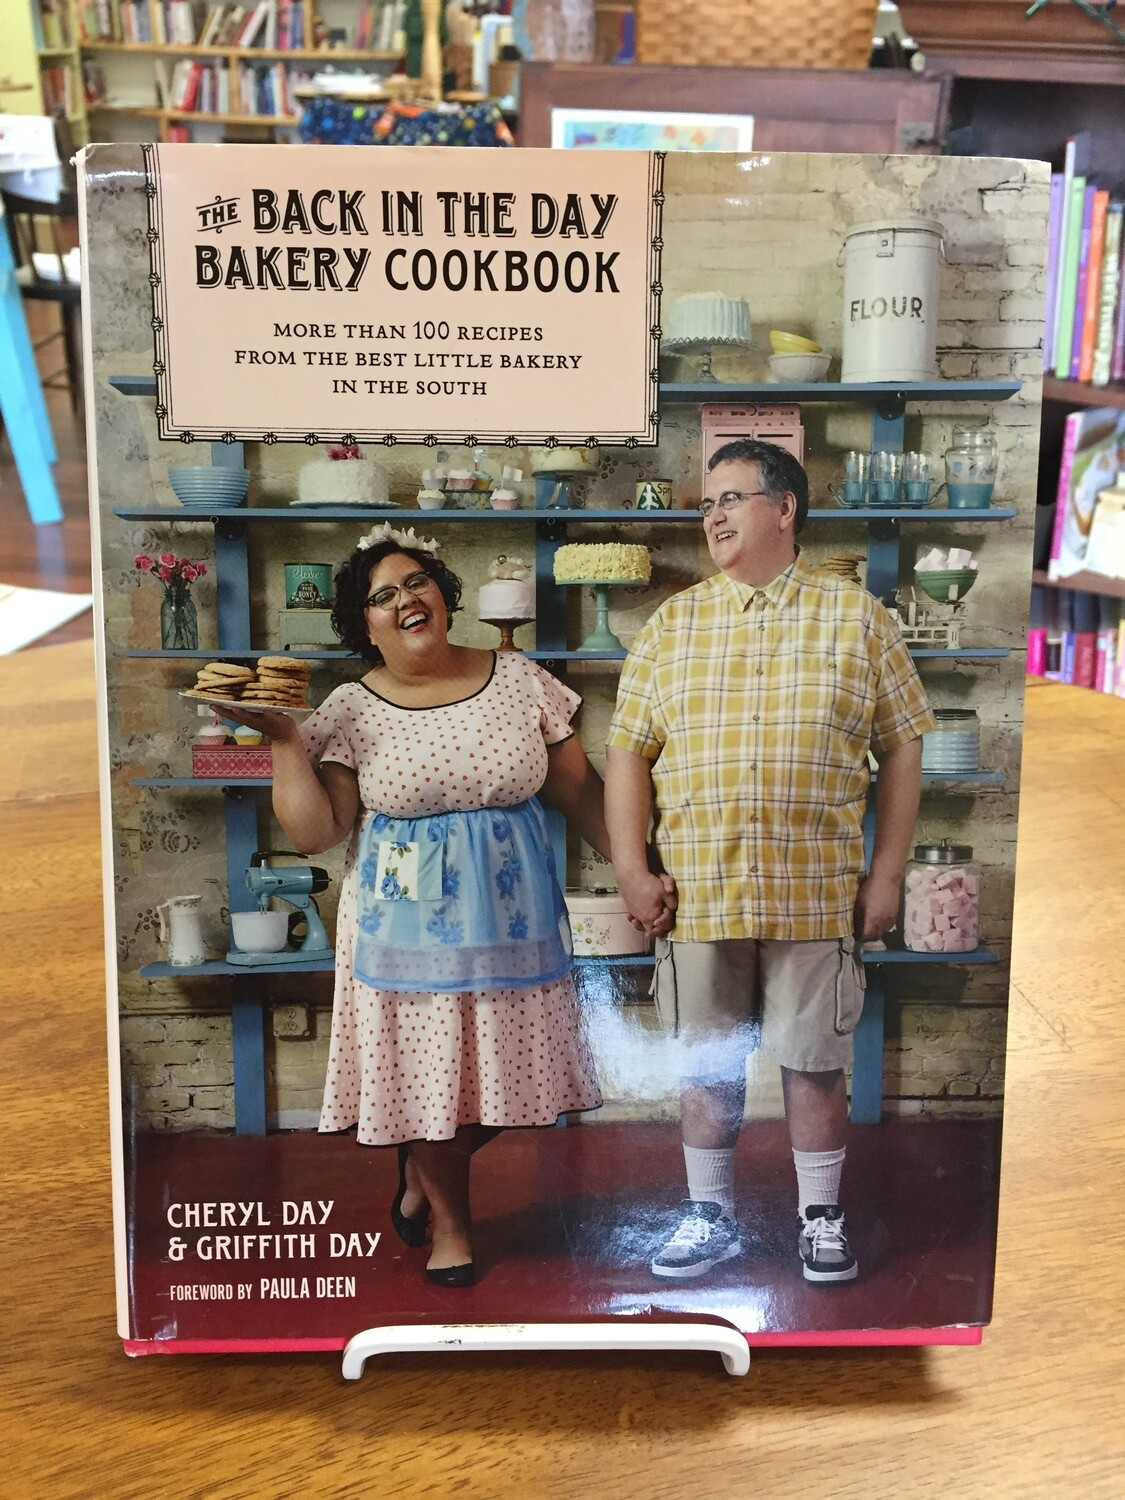 Back in the Day Bakery Cookbook